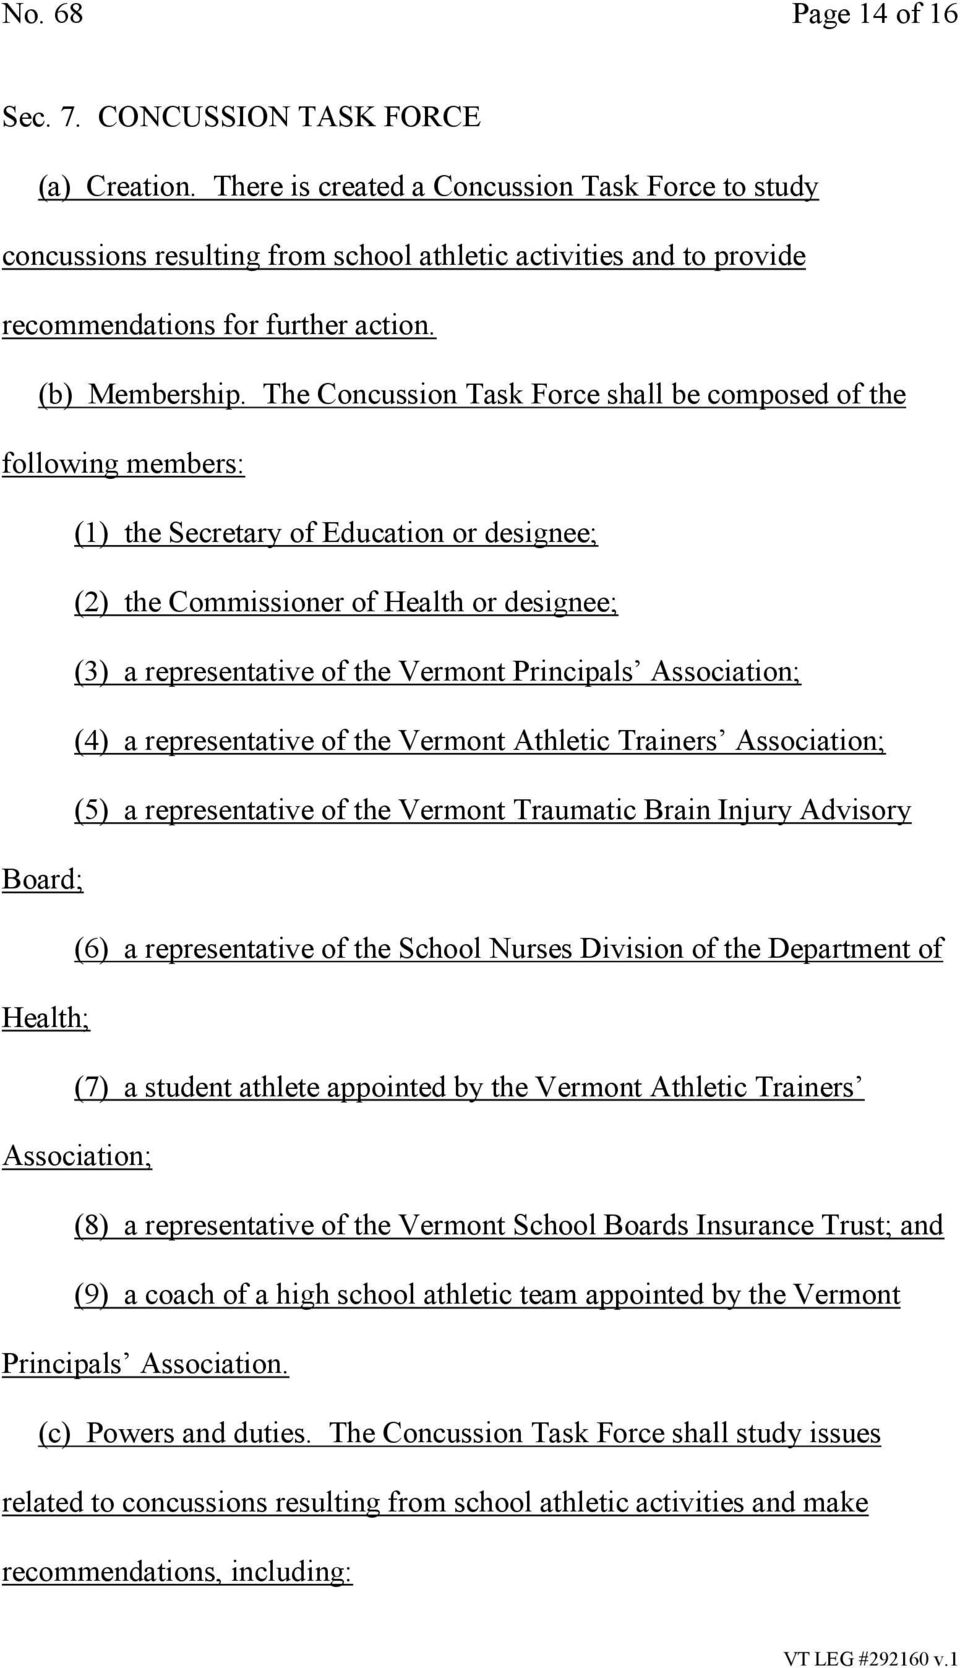 The Concussion Task Force shall be composed of the following members: (1) the Secretary of Education or designee; (2) the Commissioner of Health or designee; (3) a representative of the Vermont